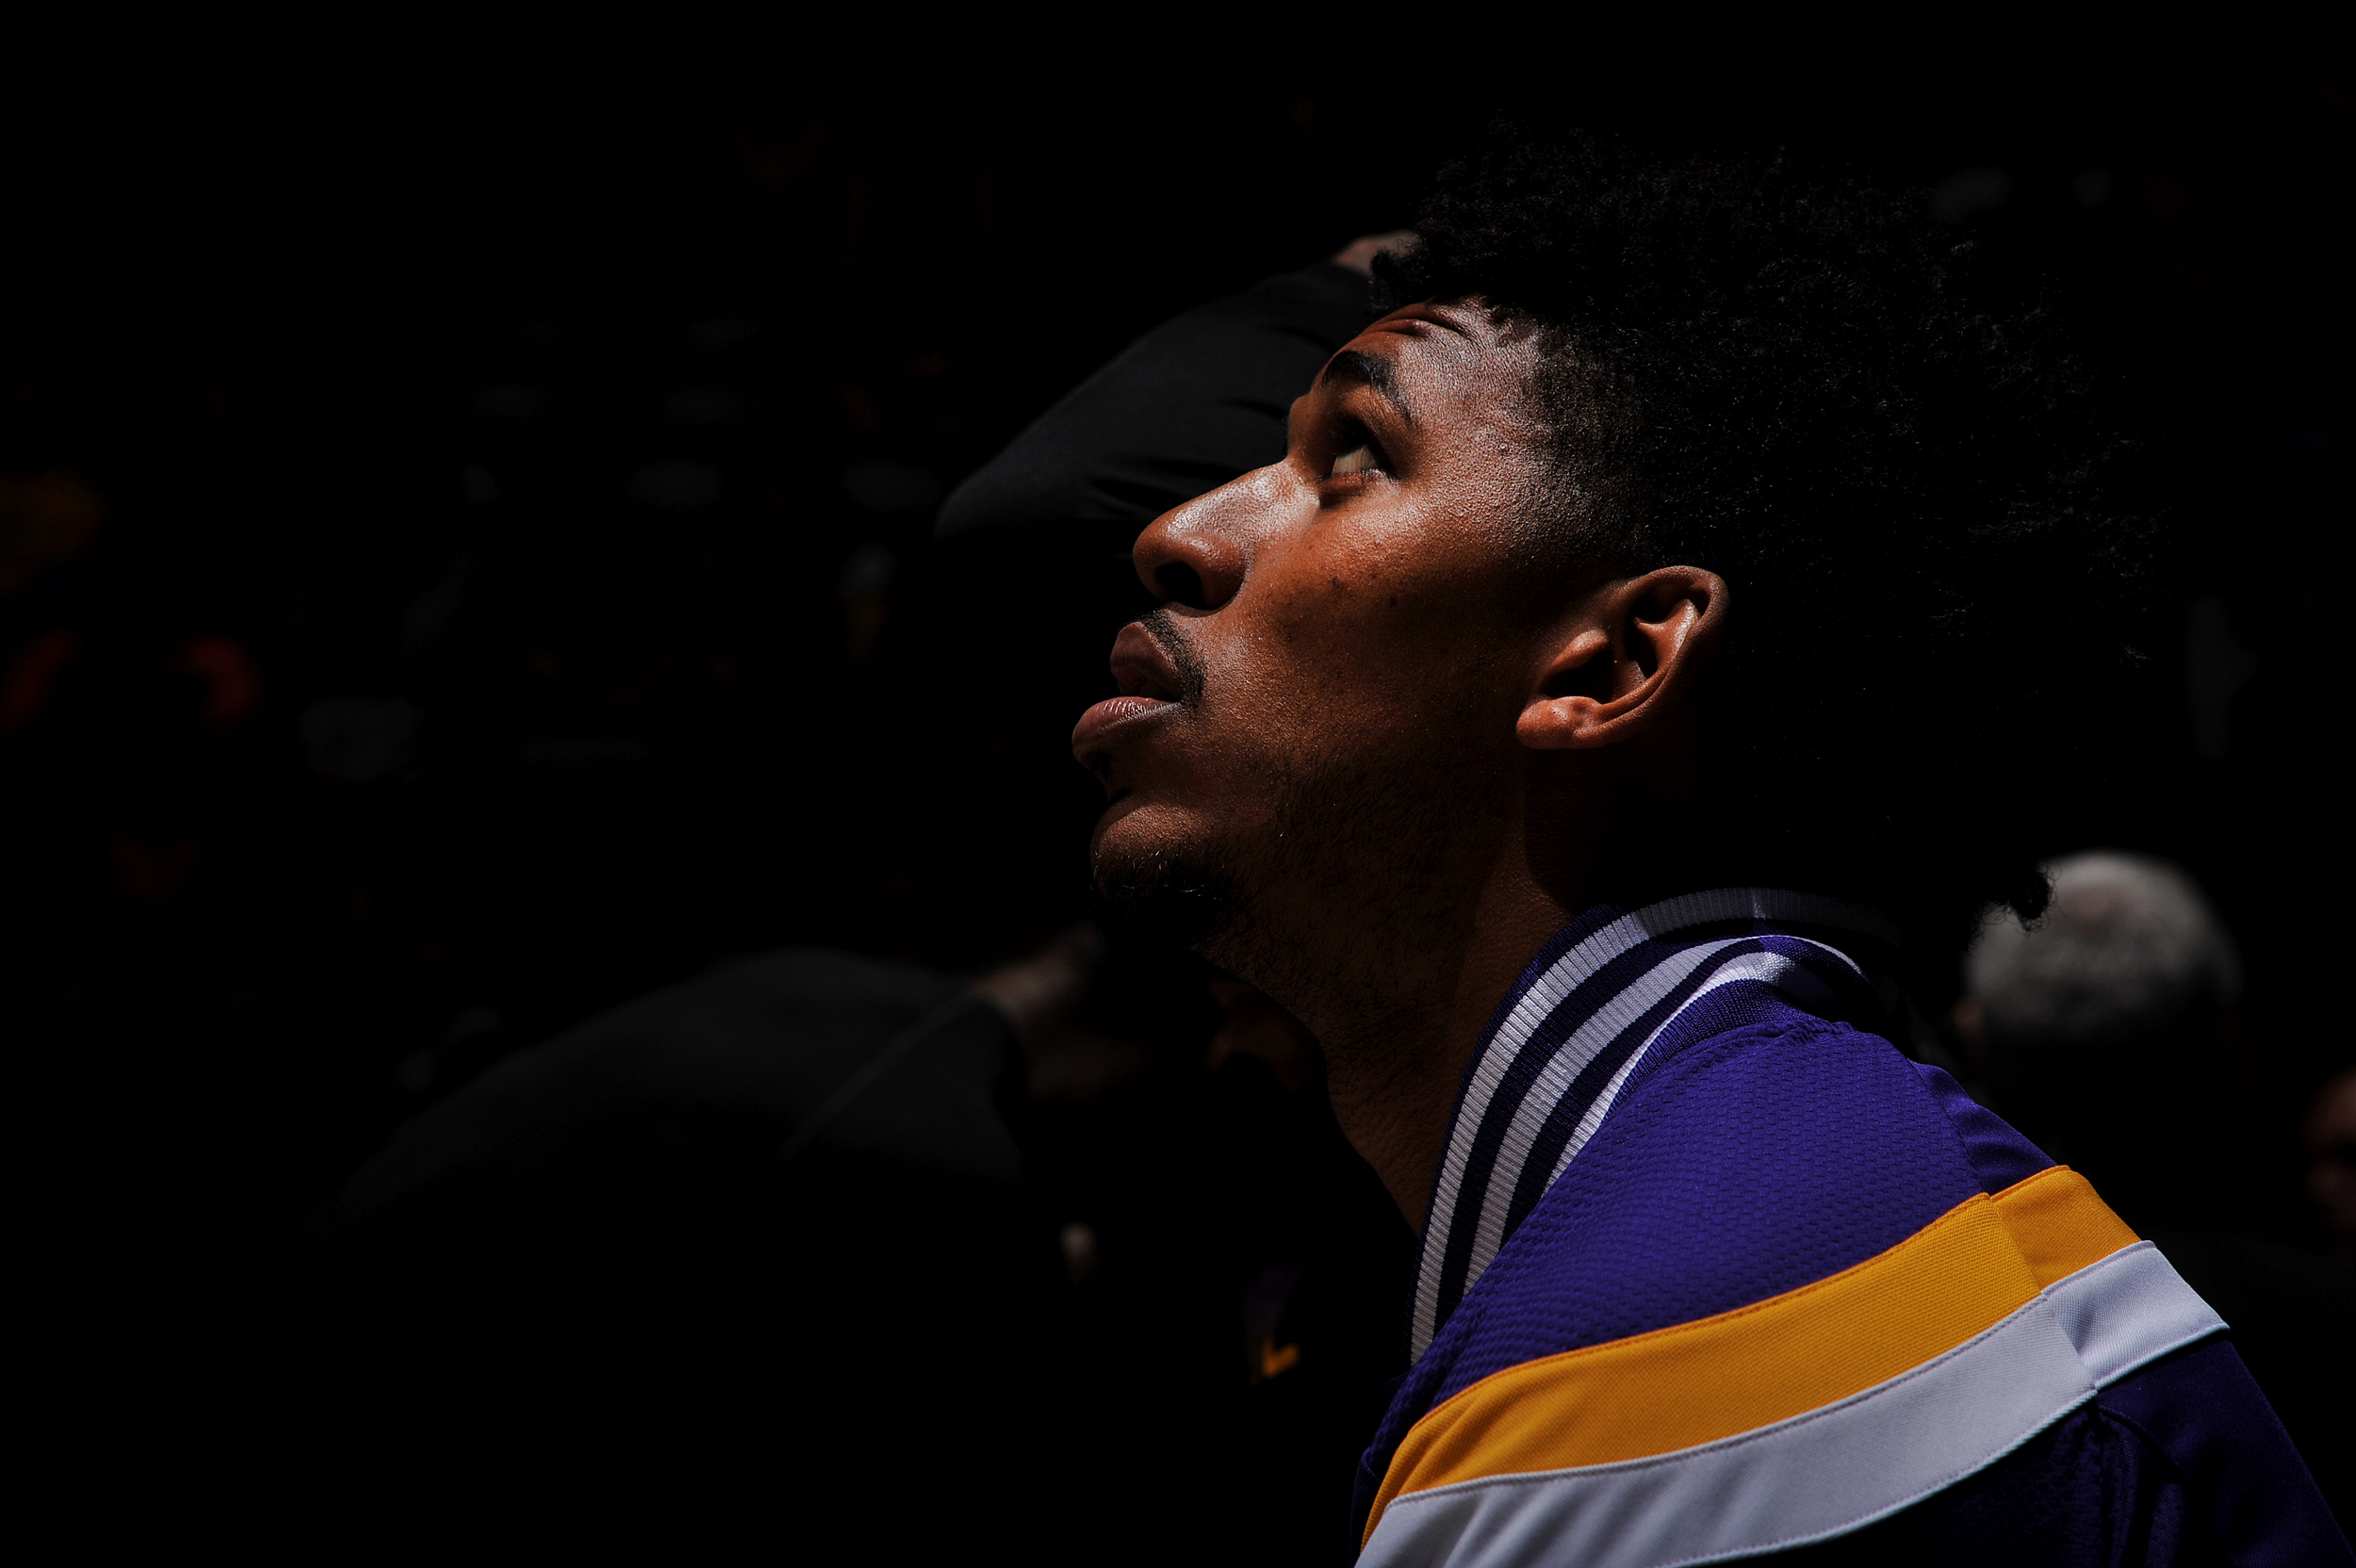 Nick Young #0 of the Los Angeles Lakers before the game against the Denver Nuggets on December 30, 2014 at the Pepsi Center in Denver, Colorado.